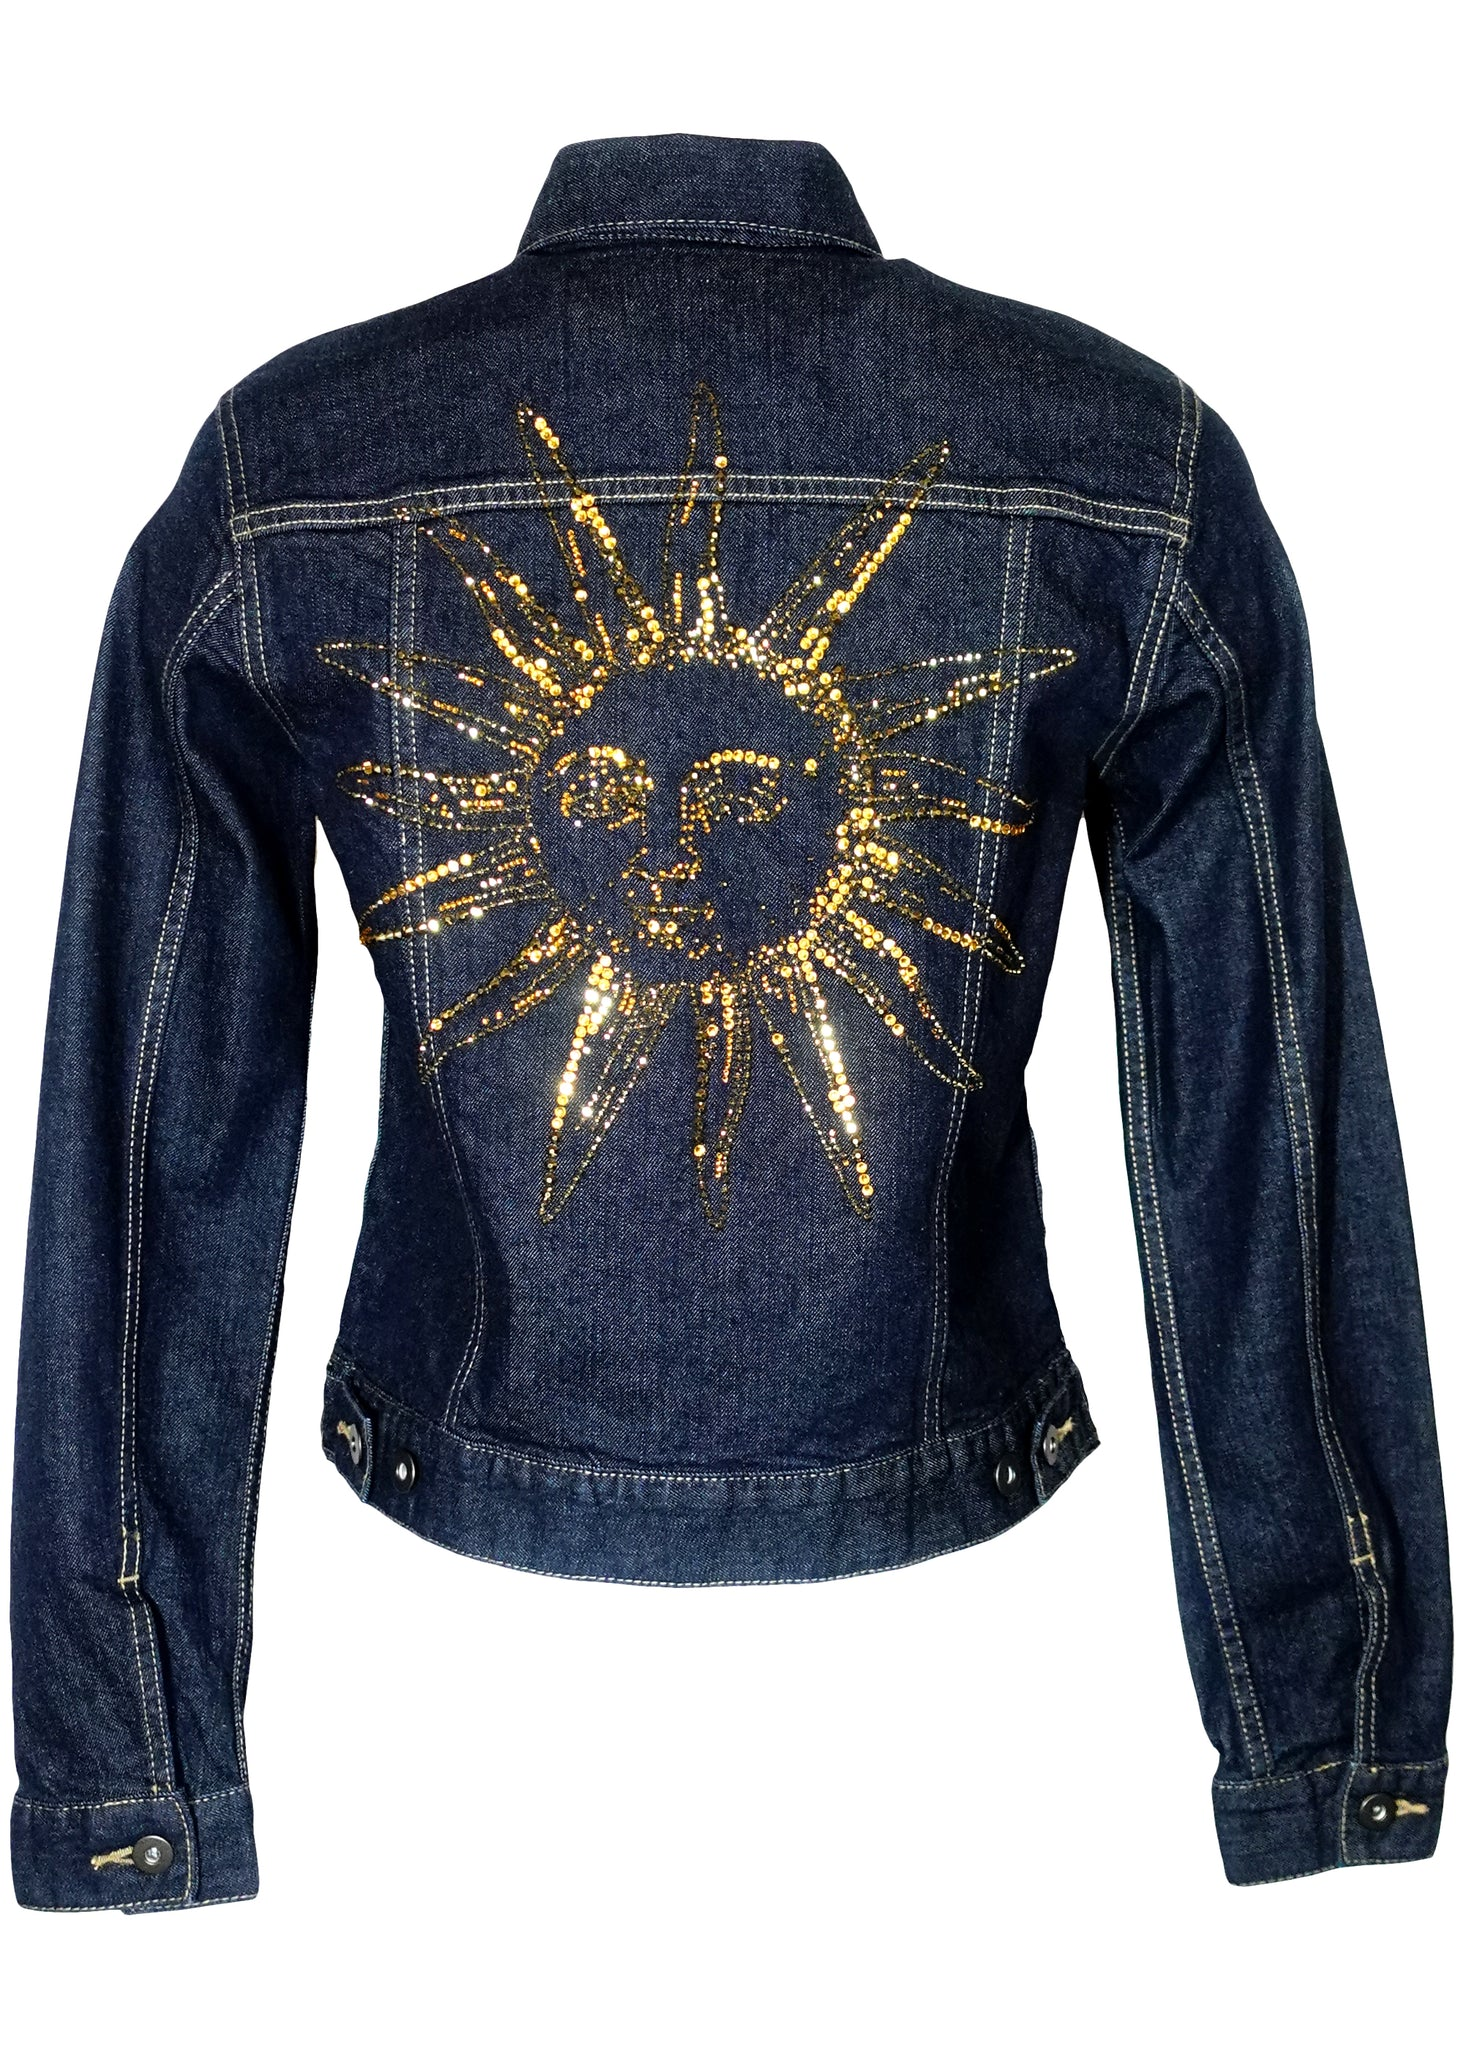 SUN AND MOON DENIM JACKET - Women's Jackets & Coats - Libertine